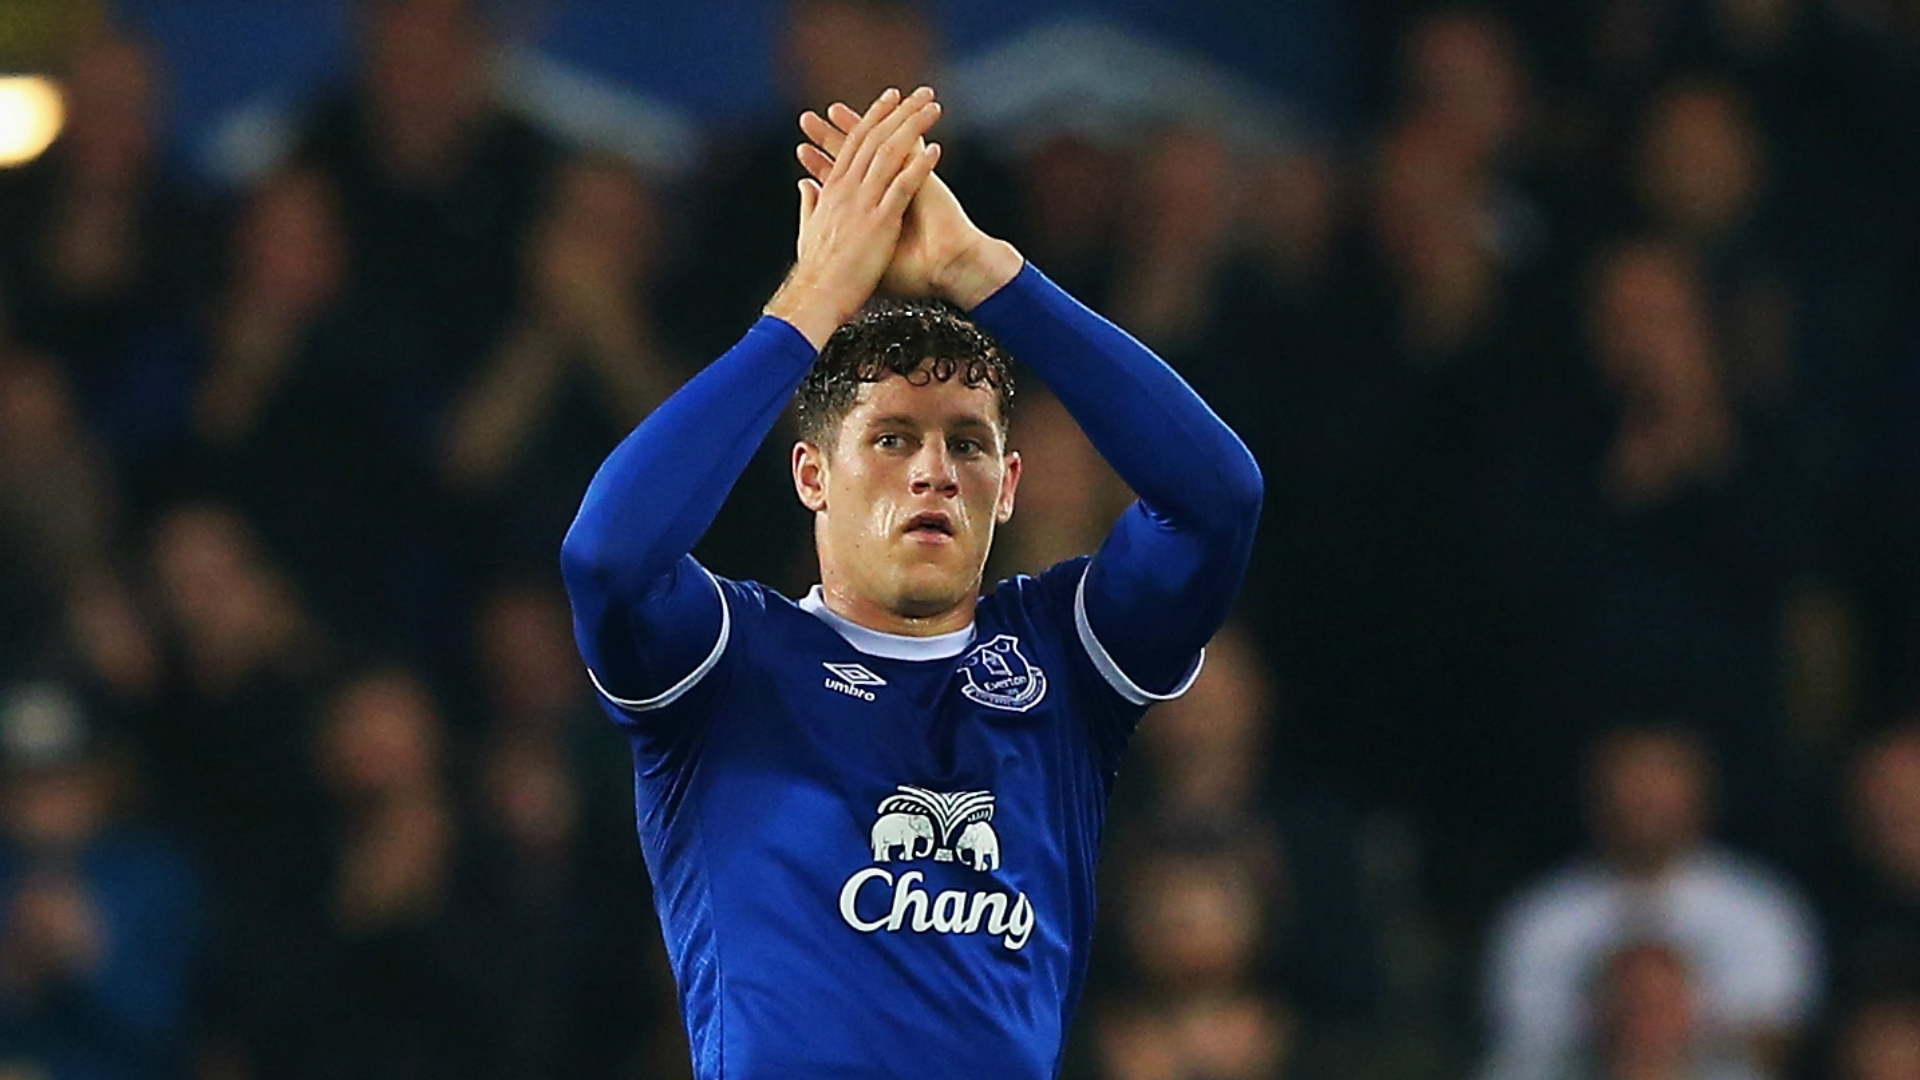 Ronald Koeman admits he's not confident about Ross Barkley's future at Everton